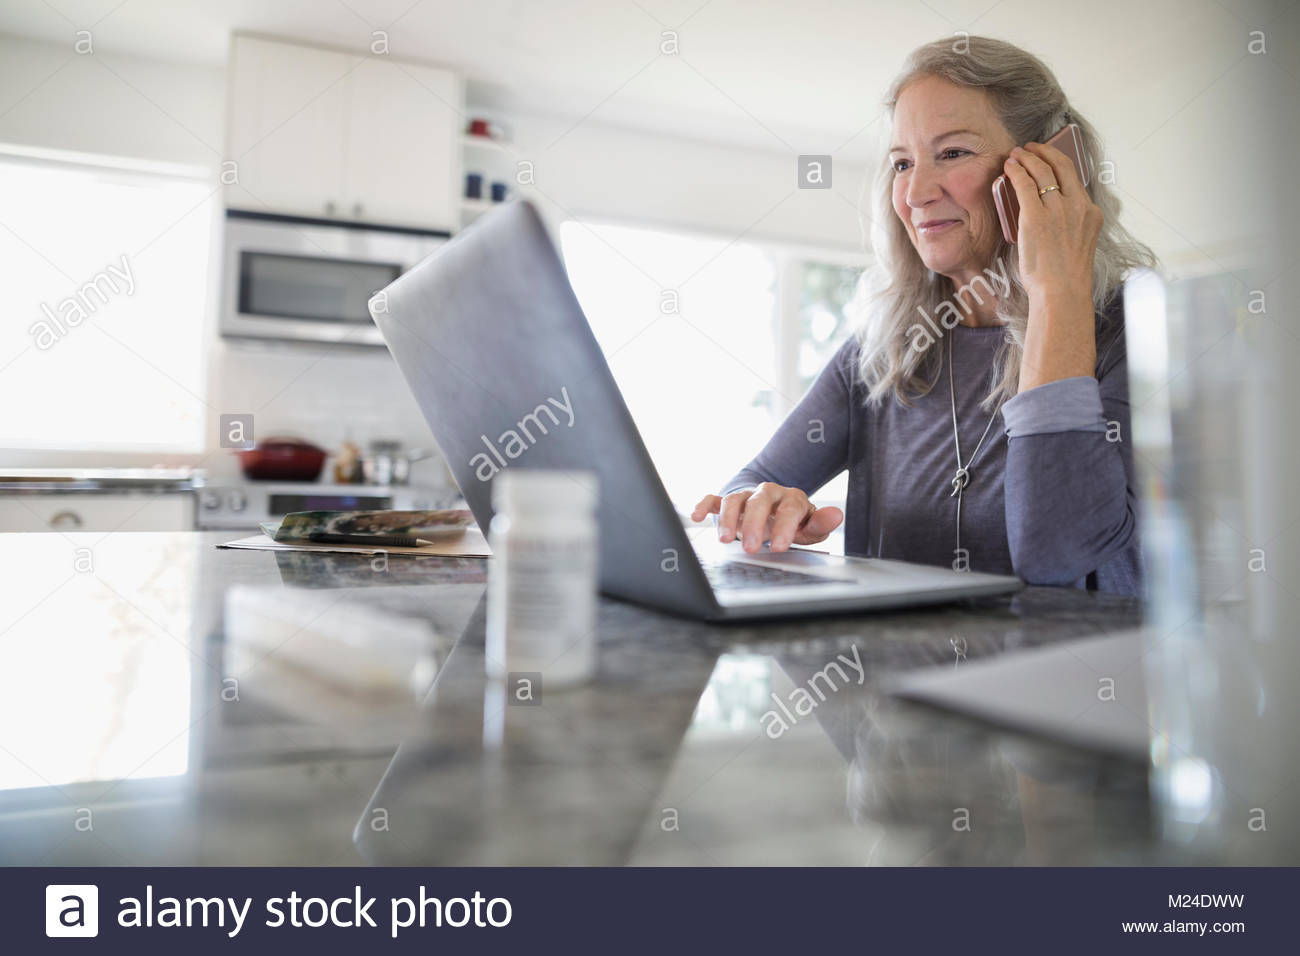 Senior woman talking on cell phone and using laptop in kitchen - Stock Image